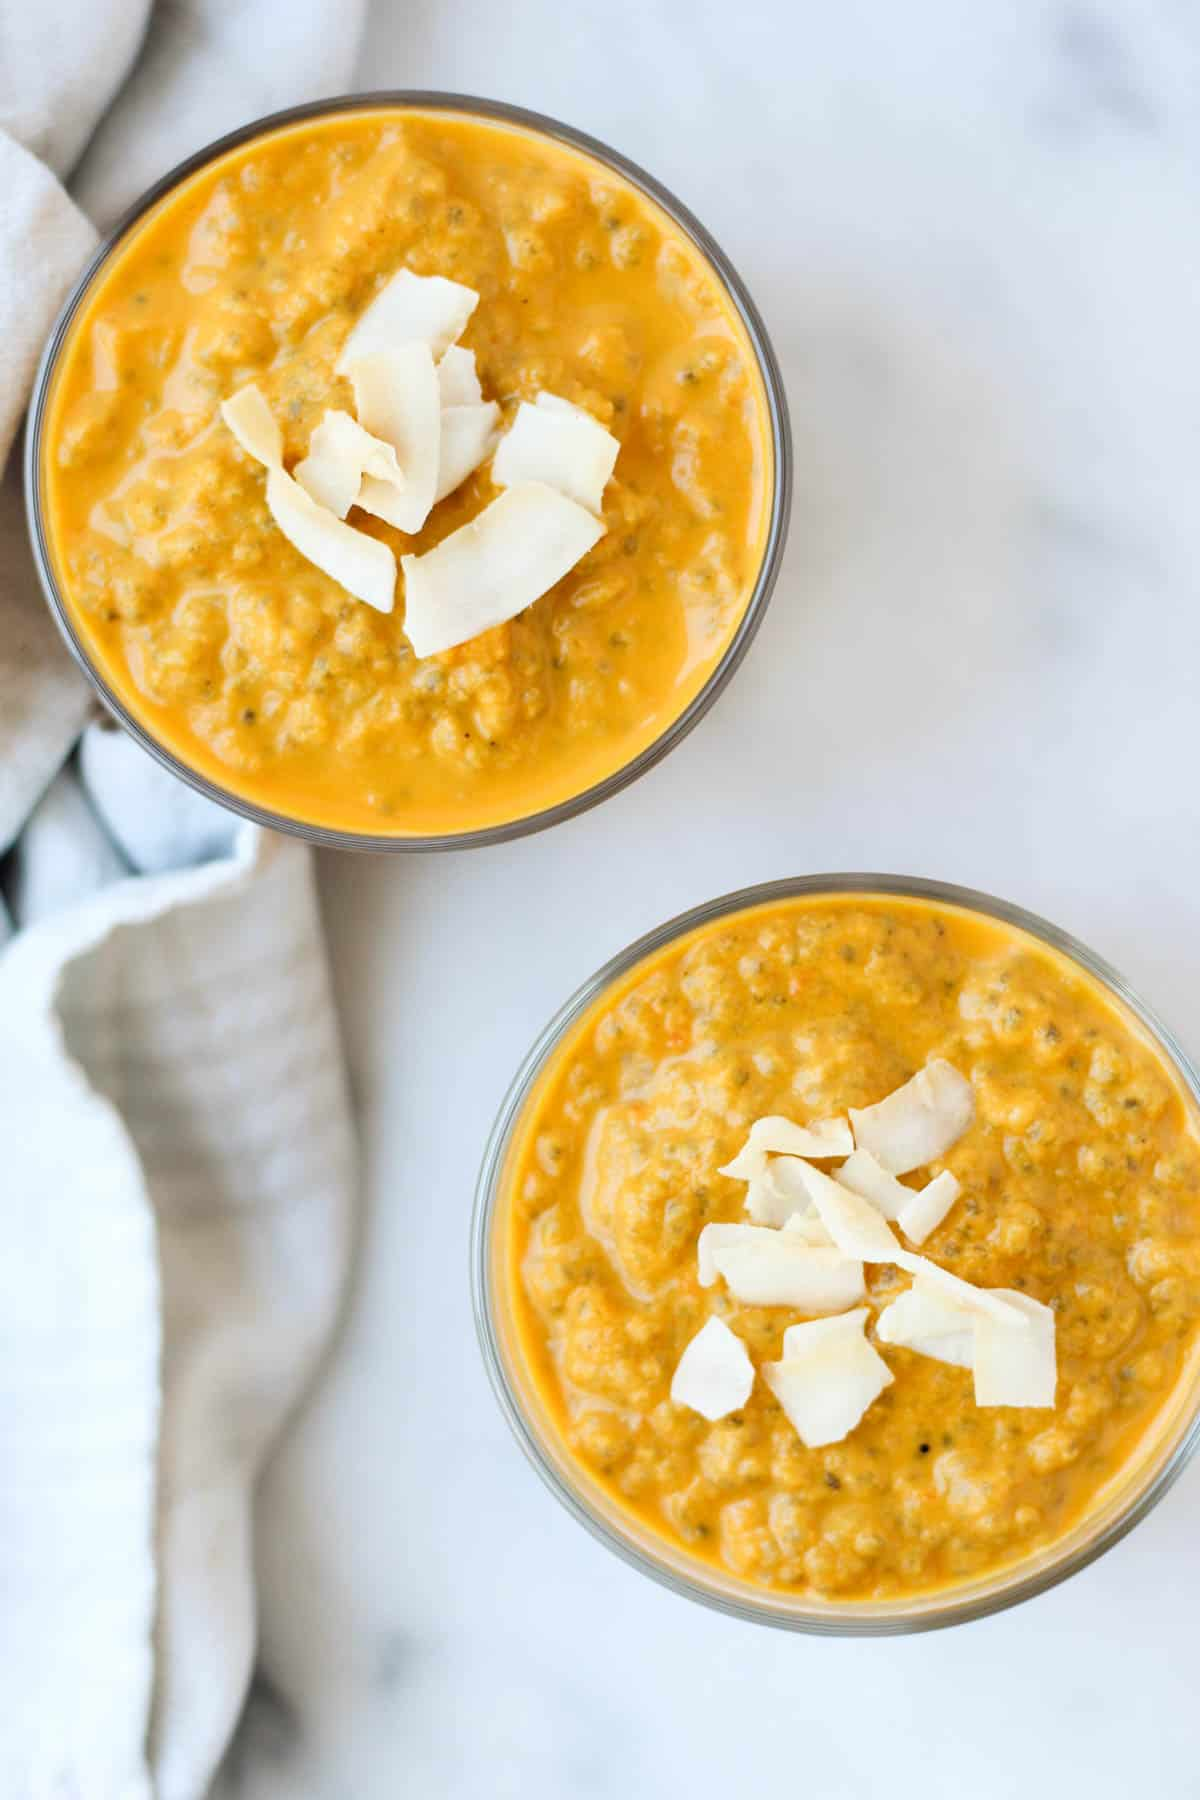 This Carrot Cake Chia Pudding takes the flavors of a classic dessert and turns it into a healthy snack that is paleo, vegan, and dairy & gluten free - Eat the Gains